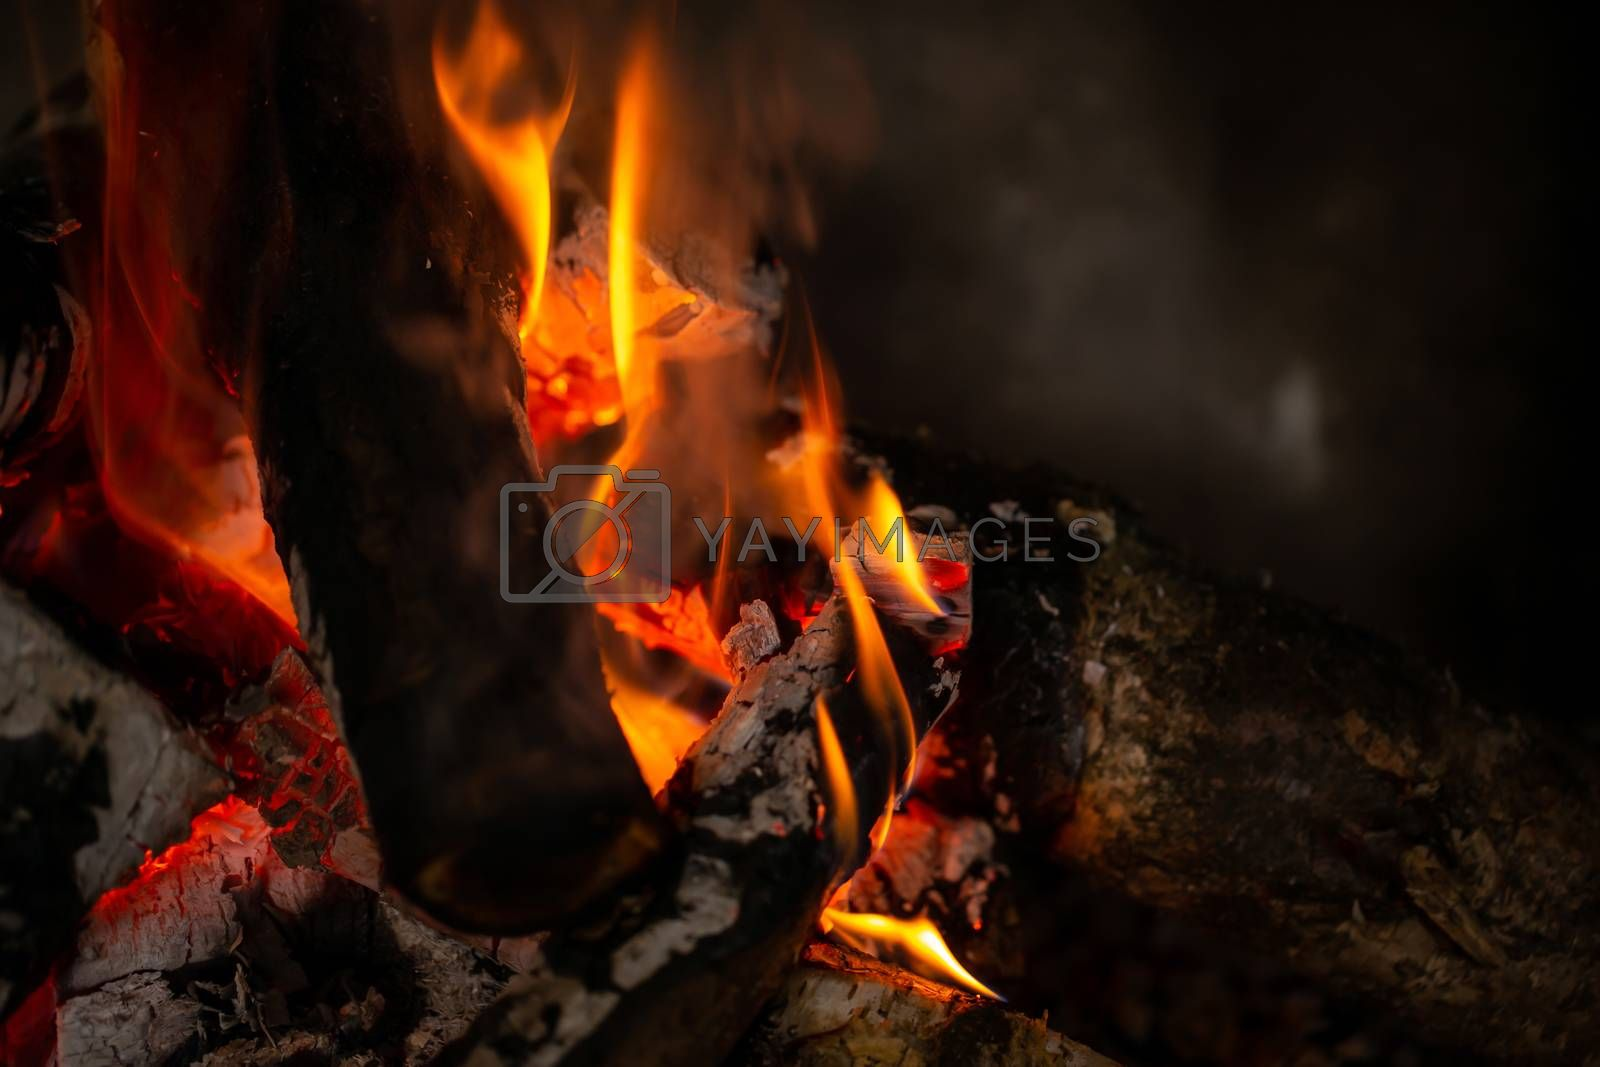 A fire is burning in the fireplace, slowly coal is being produce by Sandra Fotodesign